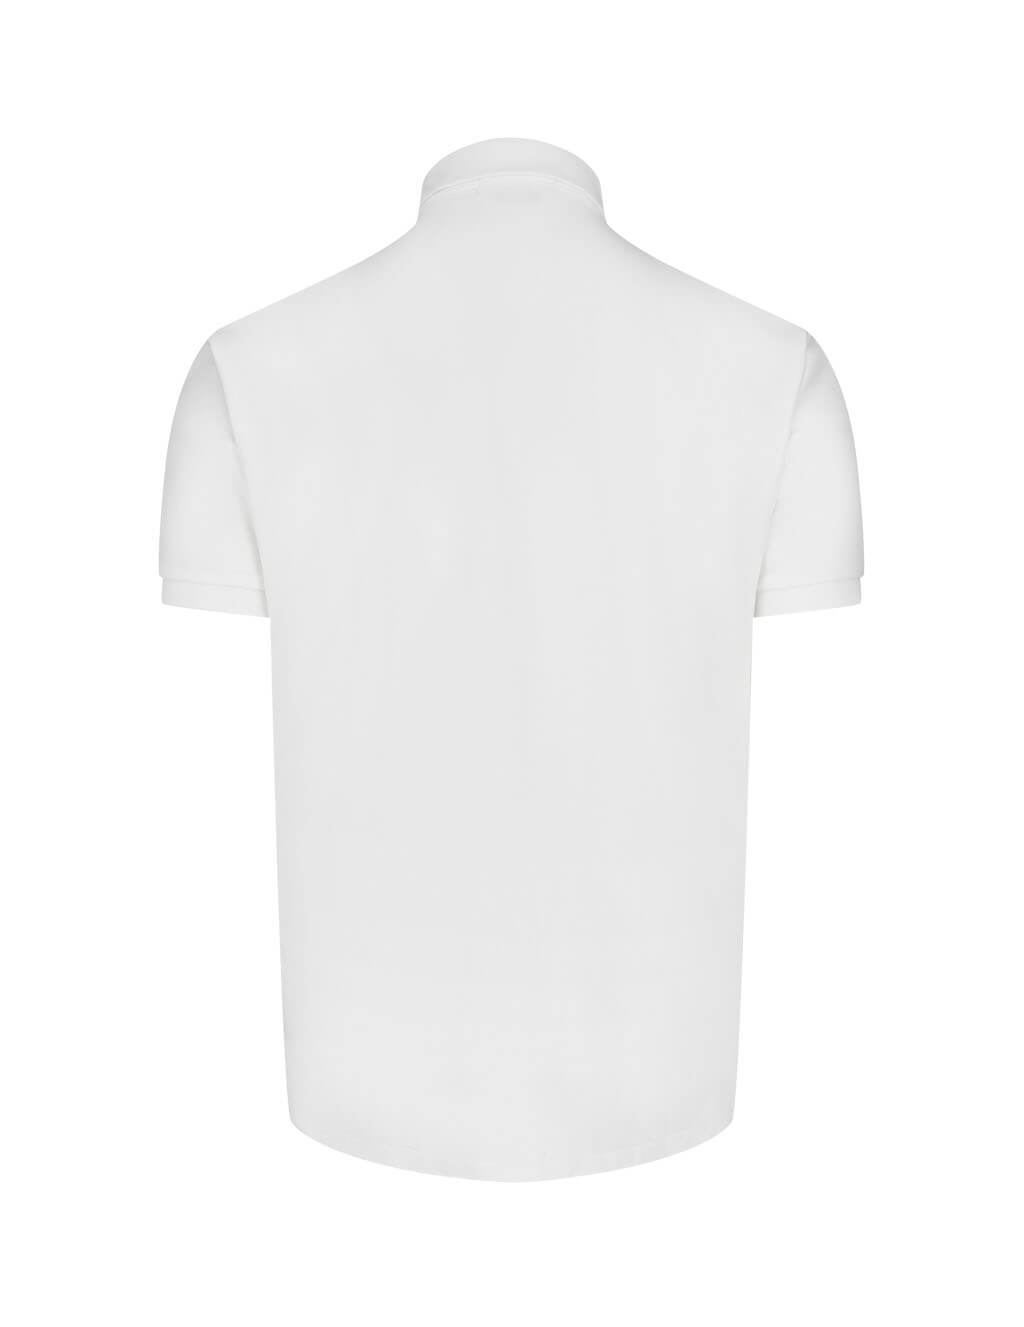 Men's Polo Ralph Lauren Slim Fit Soft Touch Polo Shirt in White 710685514001